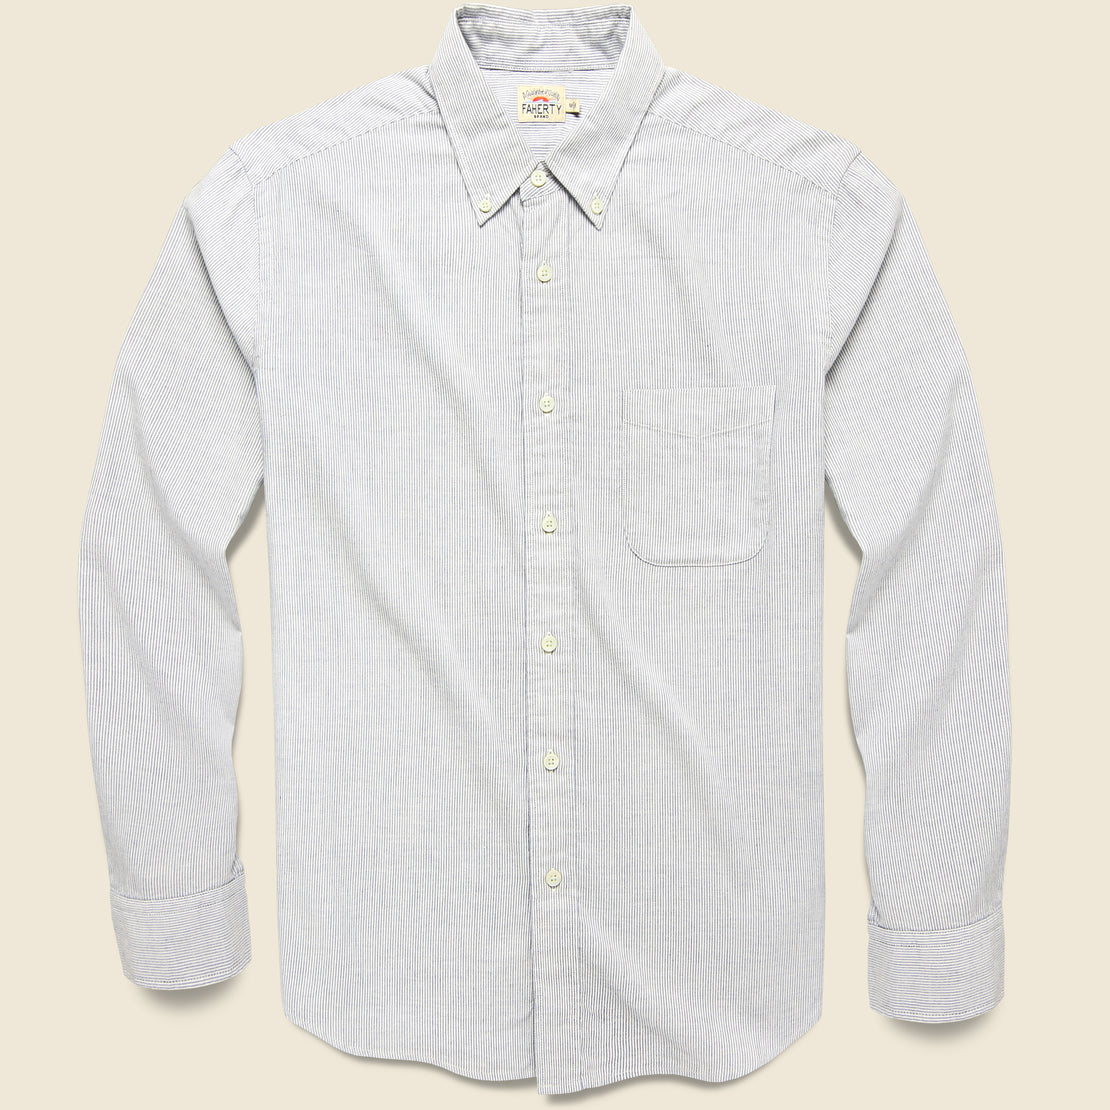 Faherty Stripe Stretch Oxford Shirt - Classic